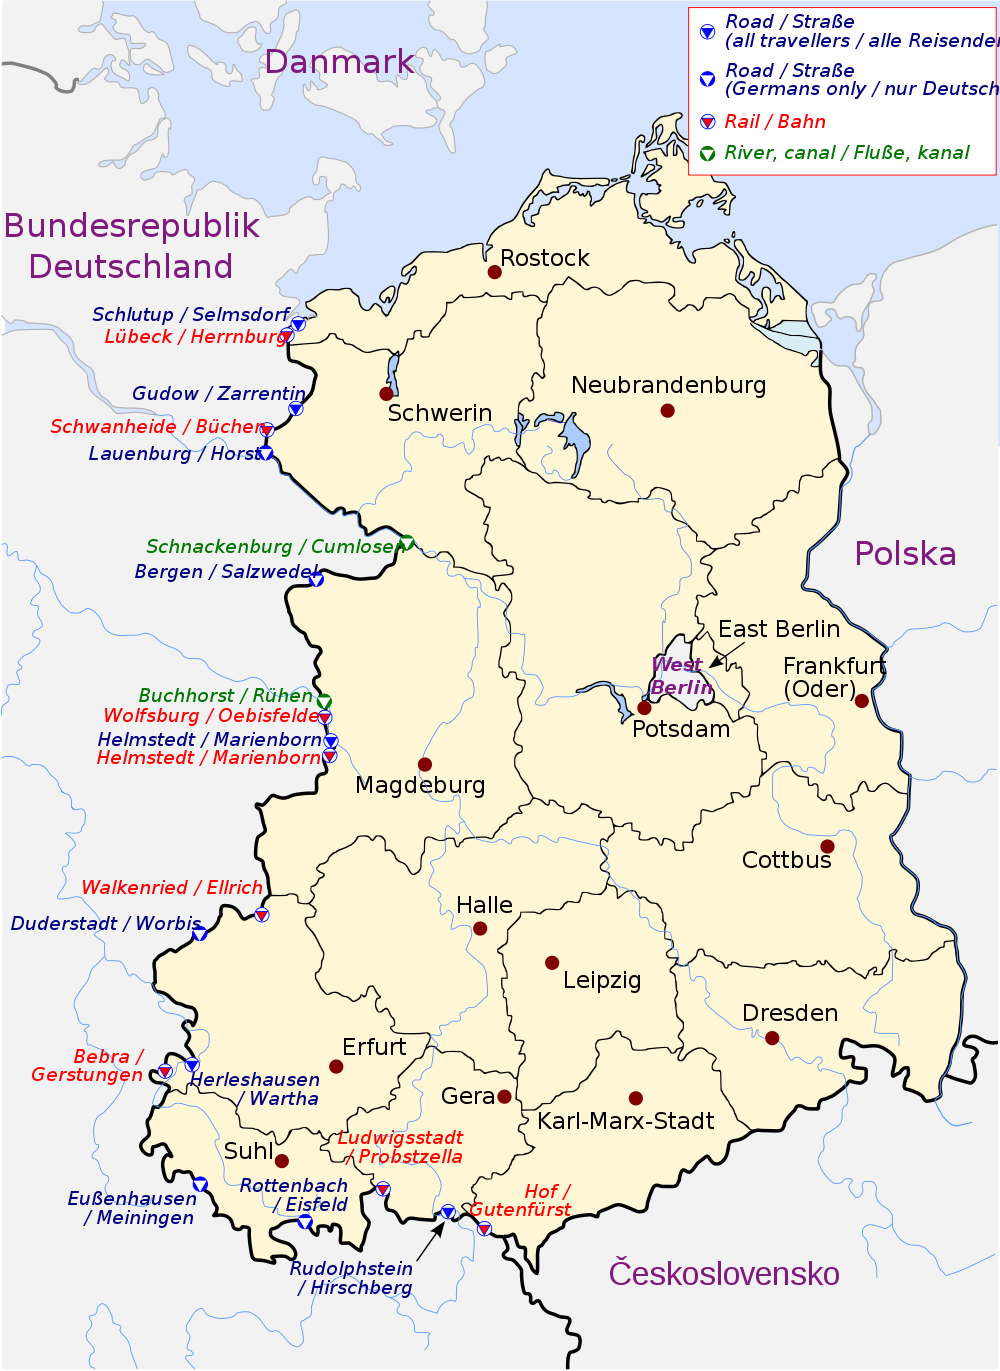 East German border crossing points as of 1982, from Wikipedia #map #coldwar #germany